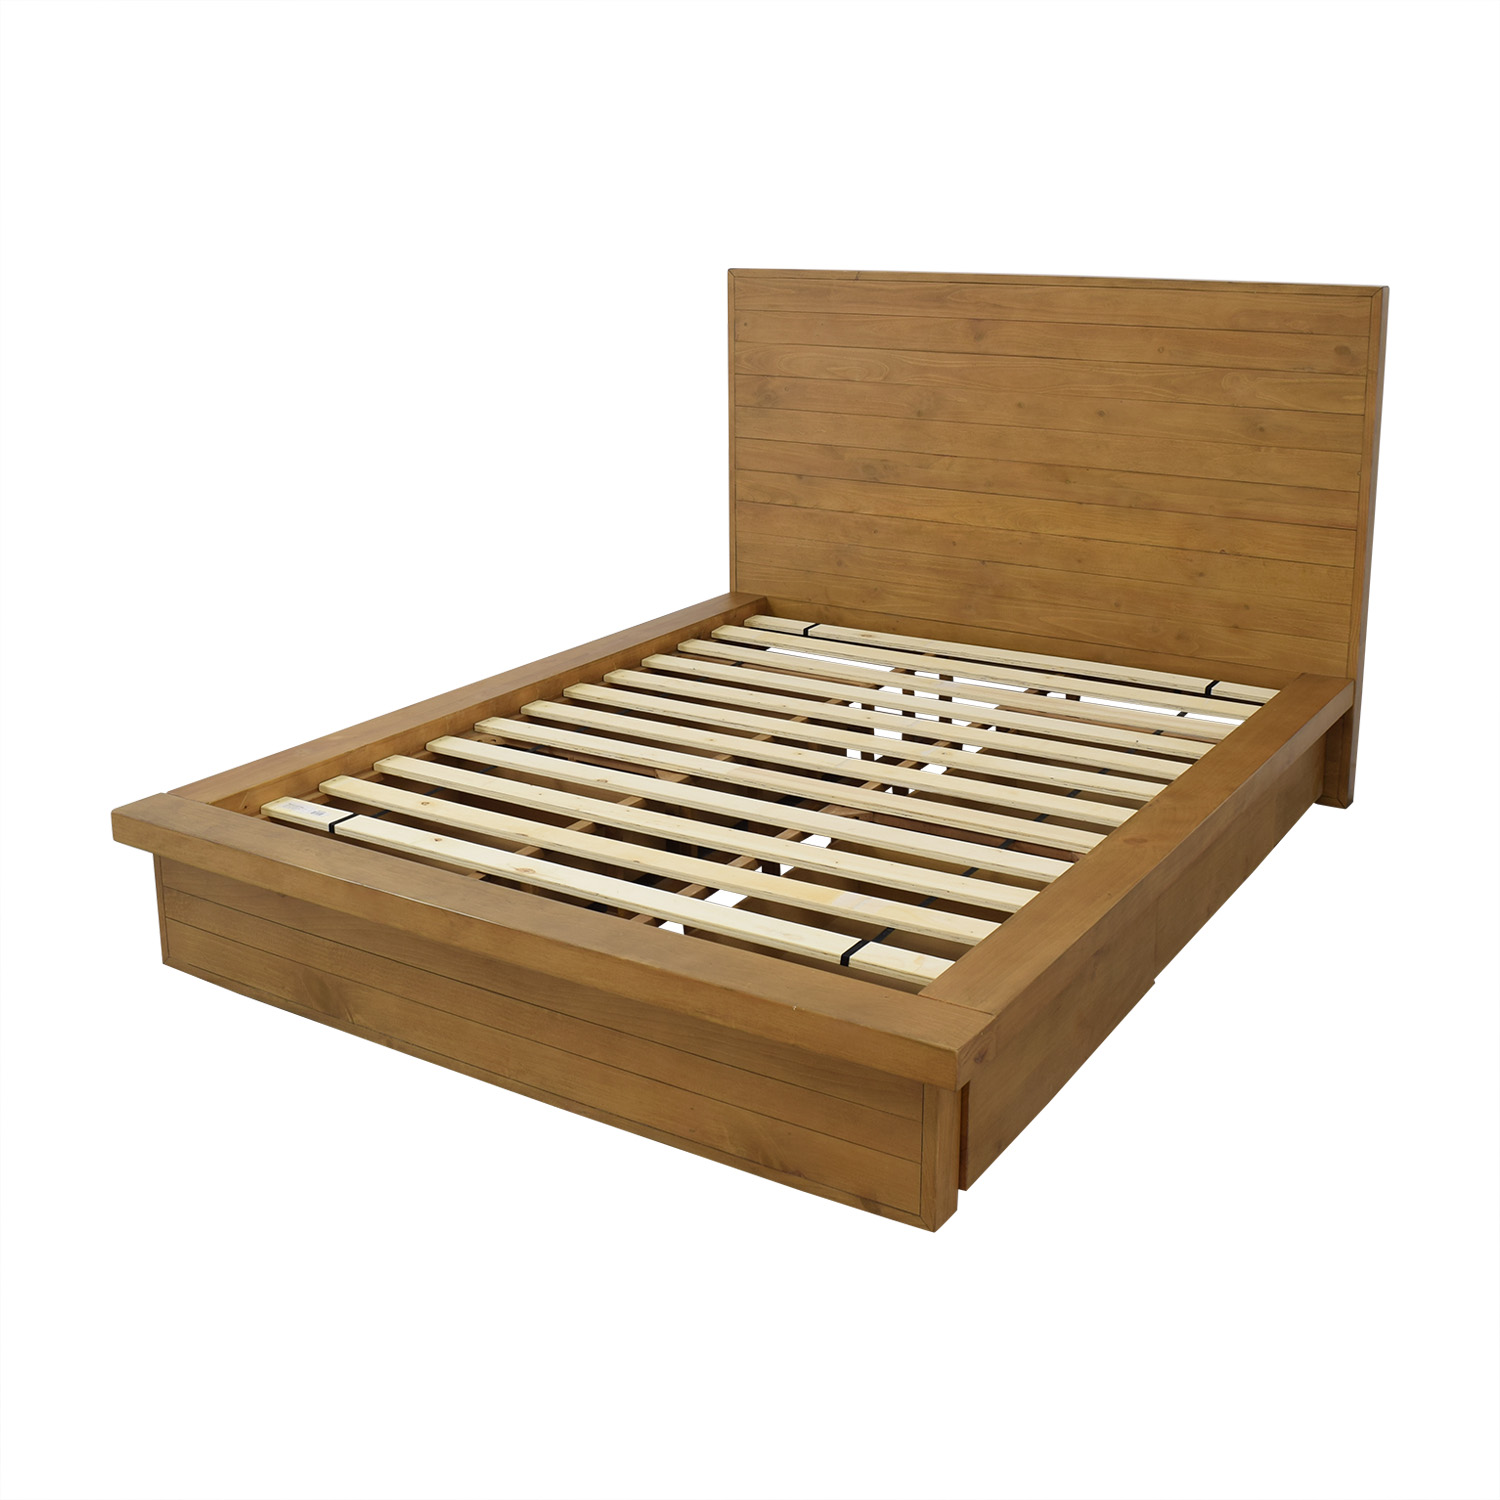 shop Macy's Macy's Albine Wood Storage Queen Platform Bed online